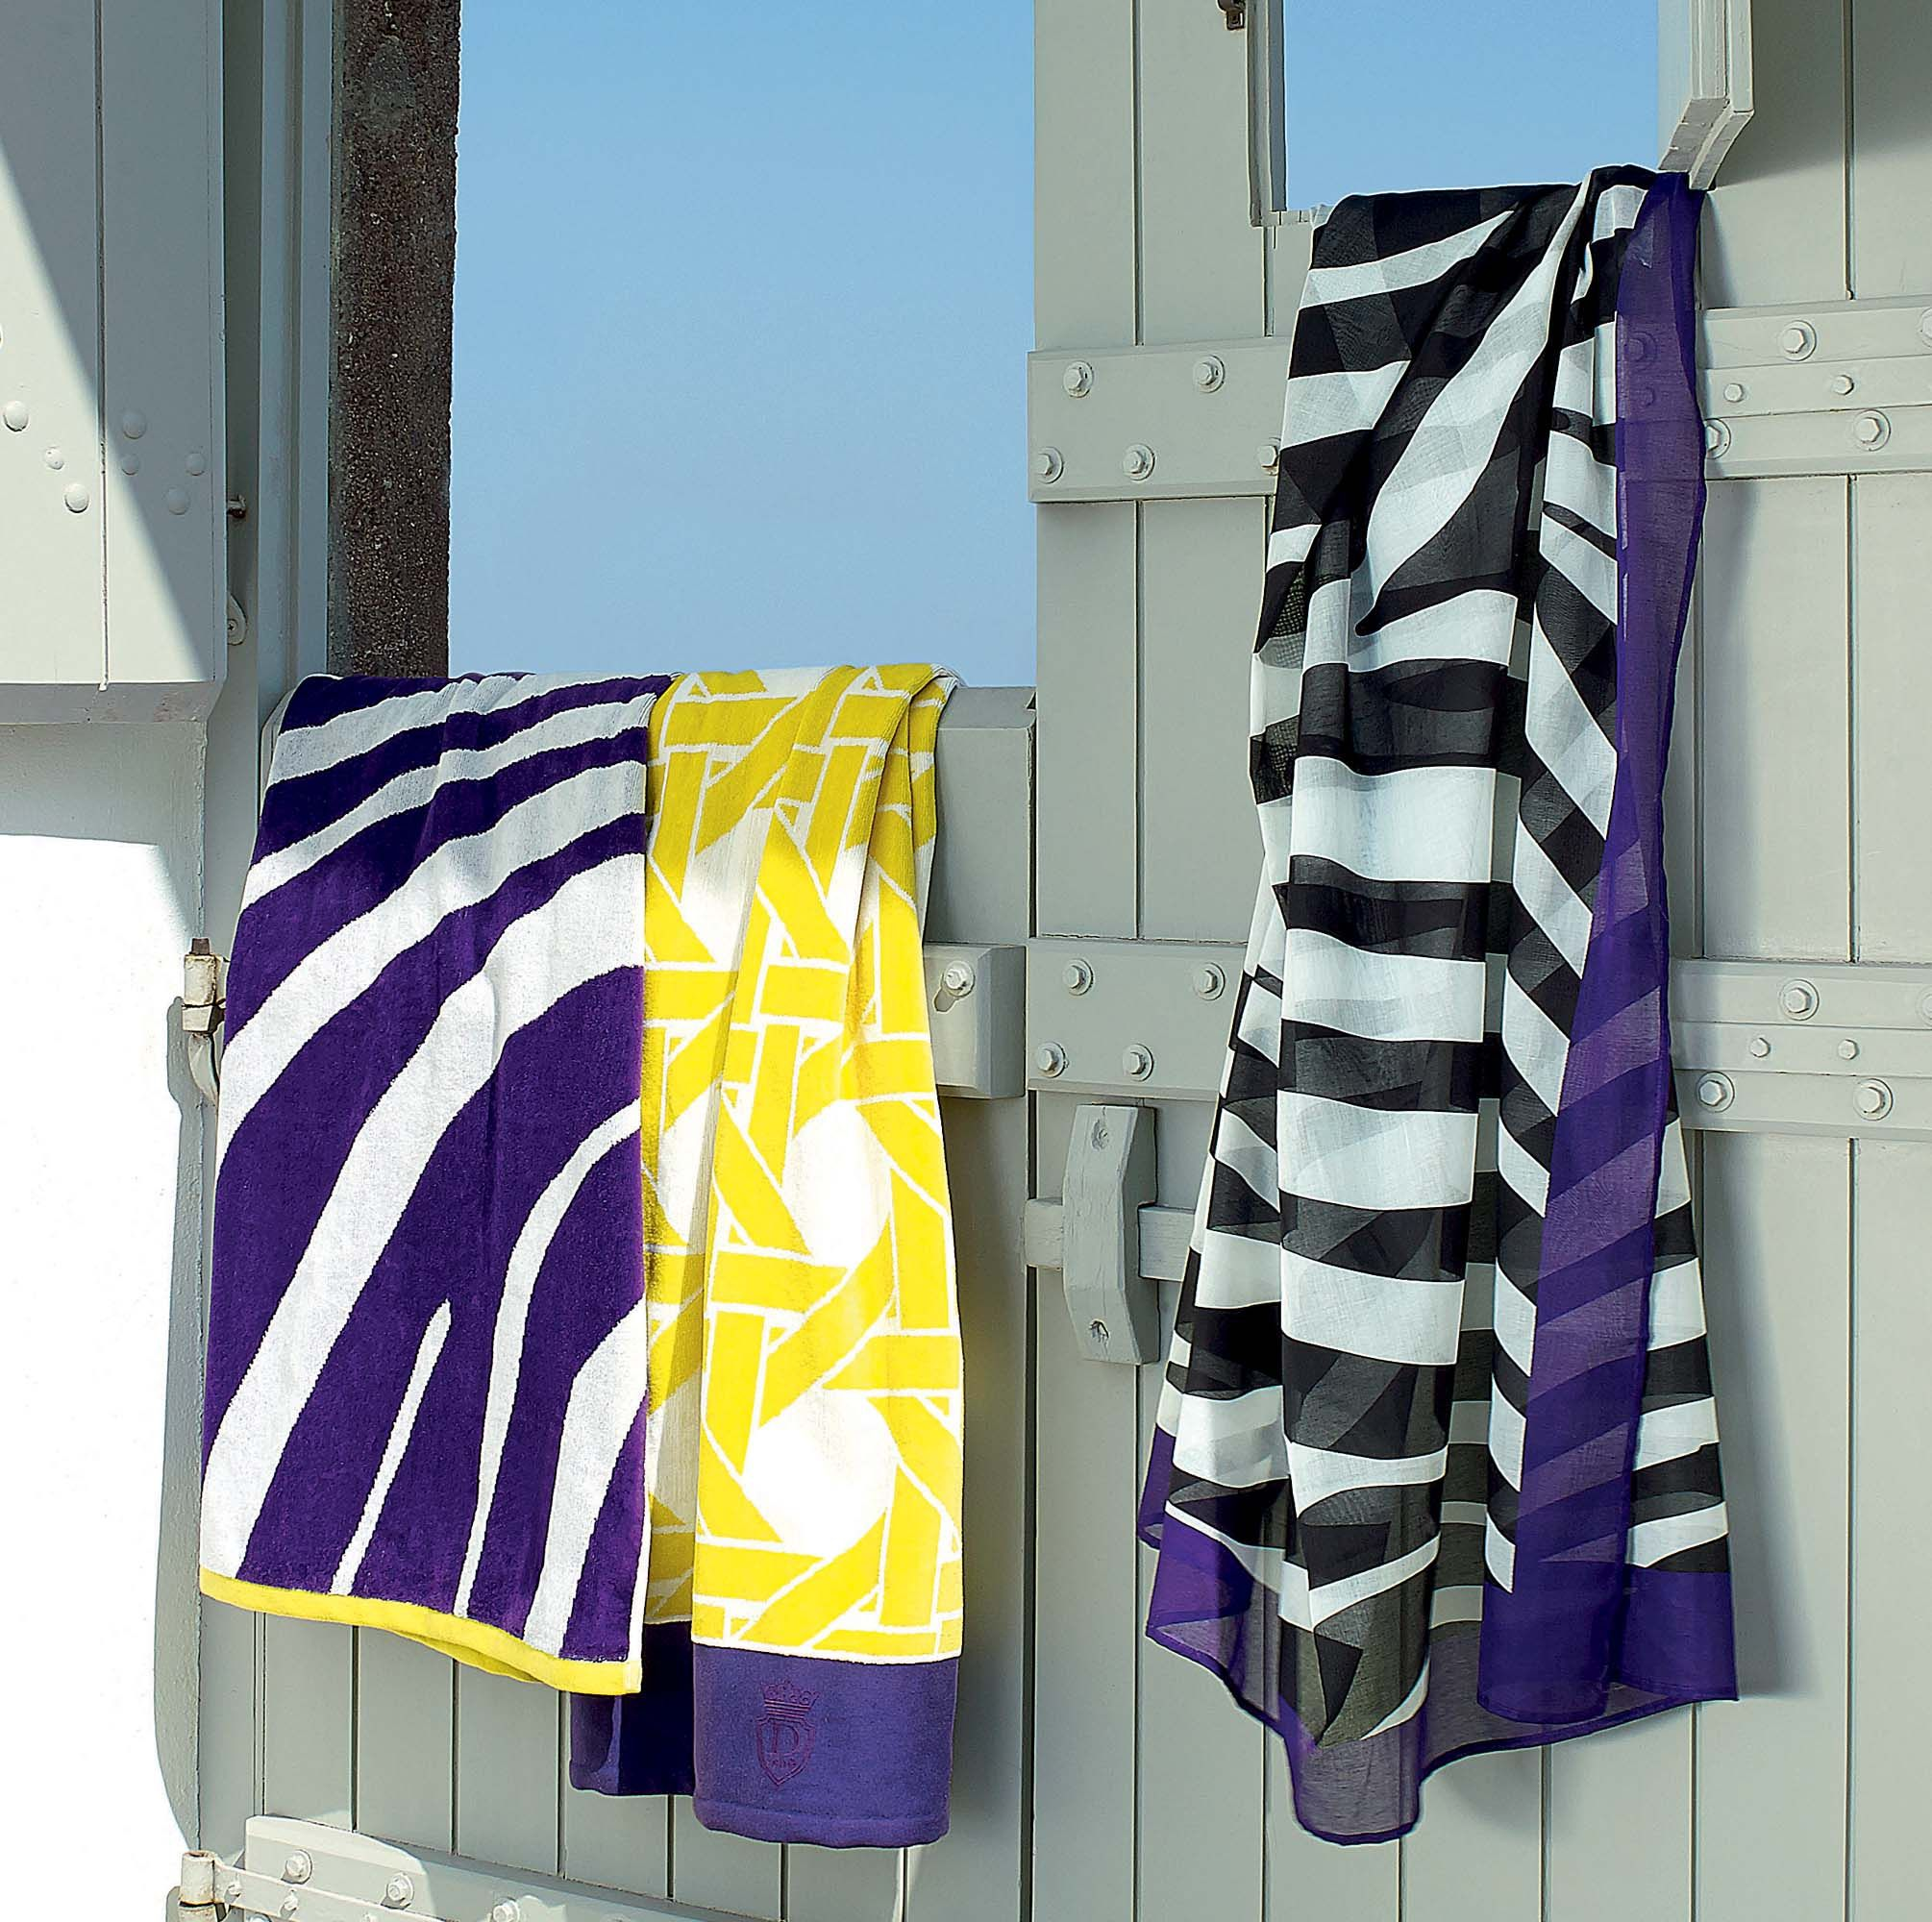 Serviette De Plage Descamps.Drap De Plage Descamps Zebre Violet Tres Belle Collection